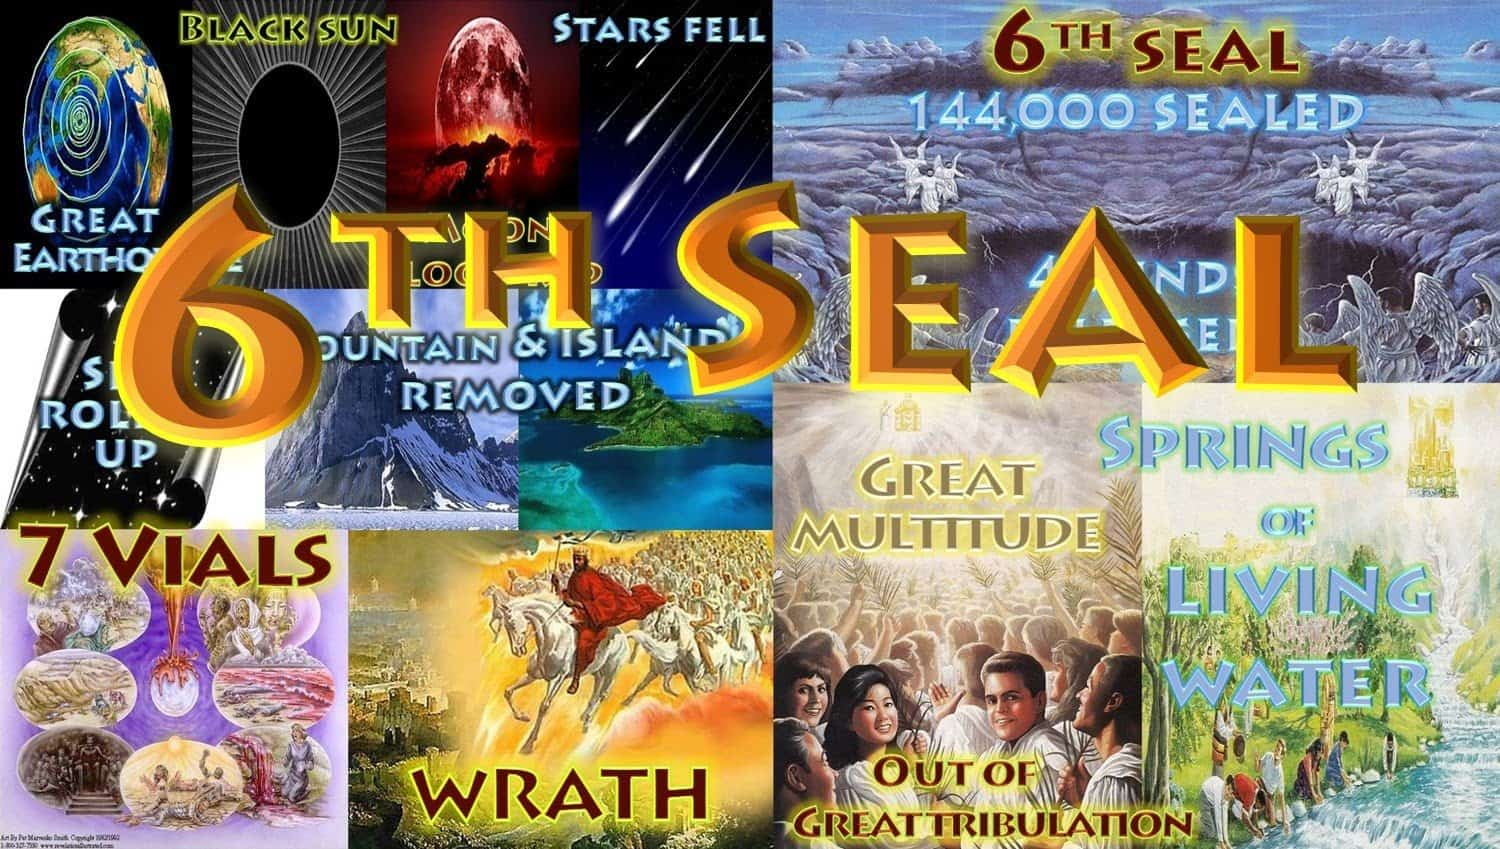 Sixth Seal,Book of Revelation,Seven Seals,Seven Trumpets,Seven Vials,Wrath,144000,Great Multitude,Salvation,Judgment,Revelation of Jesus Christ,Apocalypse,Last days,End Times,Future,Bible Prophesy,1000 year Reign,millennium,Great Tribulation,Feast of Trumpets,Feast of Attonement,Affliction,Feast of Tabernacle,Booths,River of Water of Life,Springs of Living water,7 Seals of Revelation,7 Trumpets of Revelation,7 Vials of Revelation